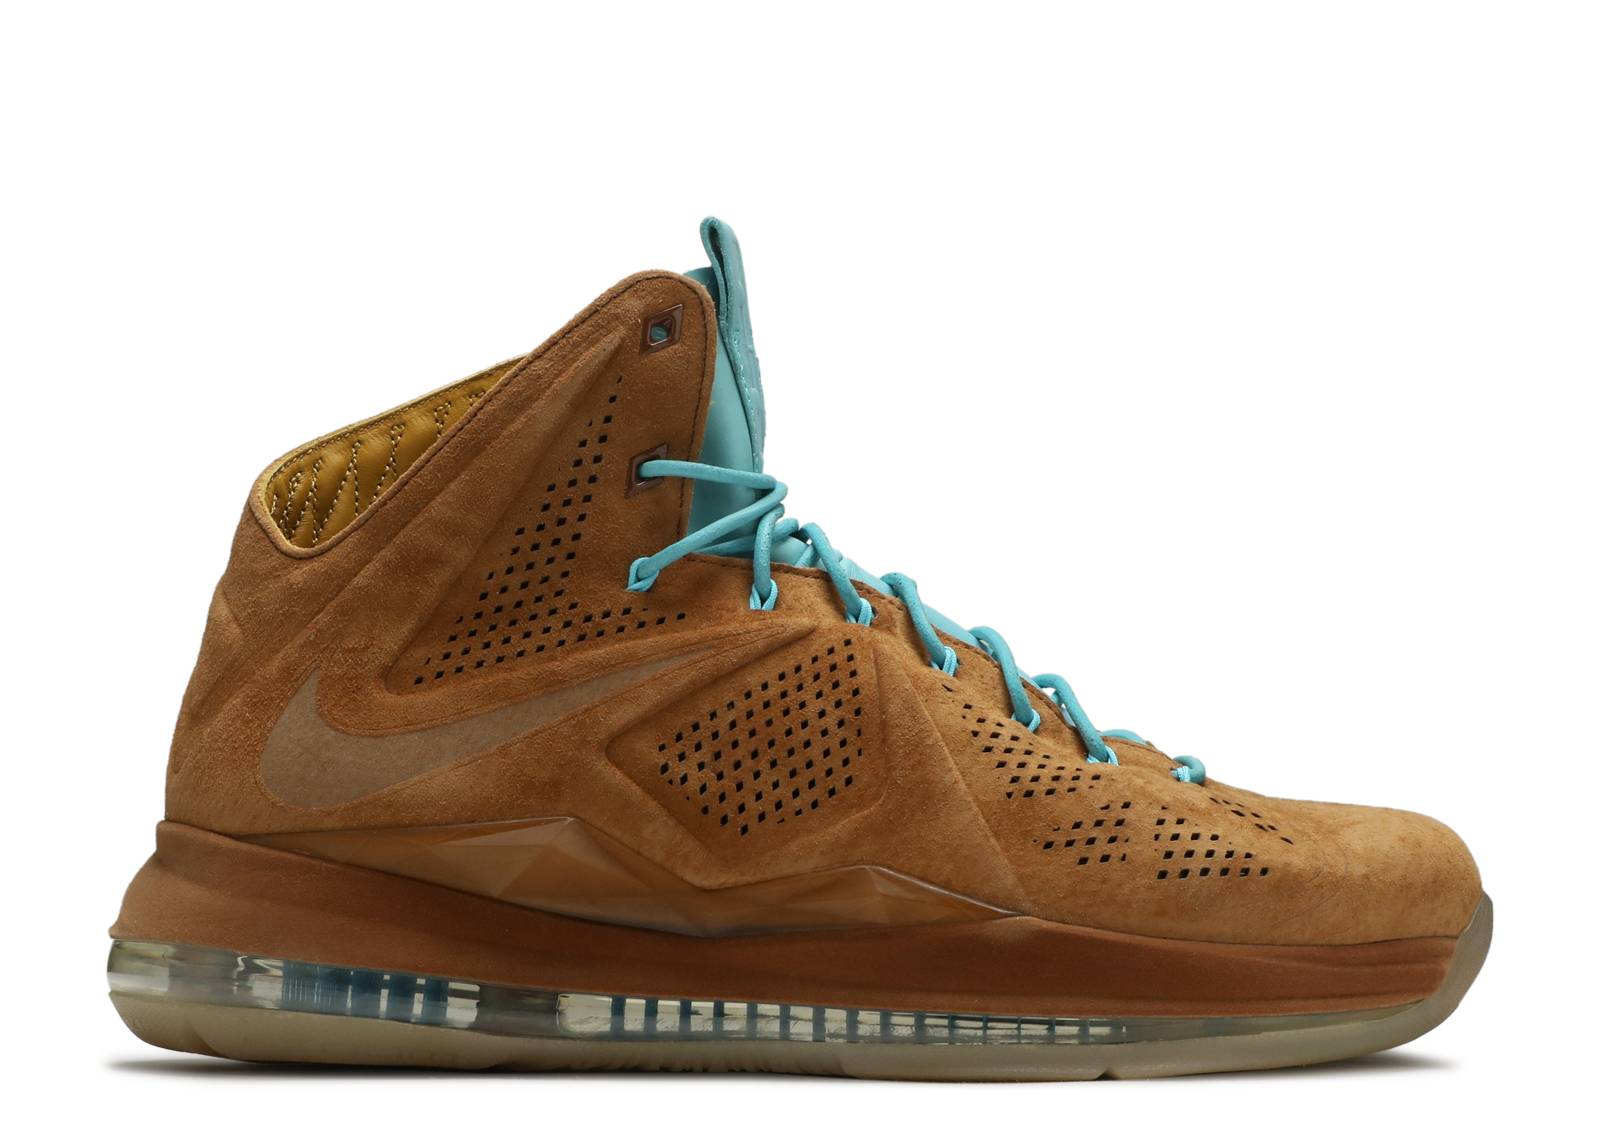 Cheap Nike Lebron 10 EXT - Brown Suede #607078-200 Consignment